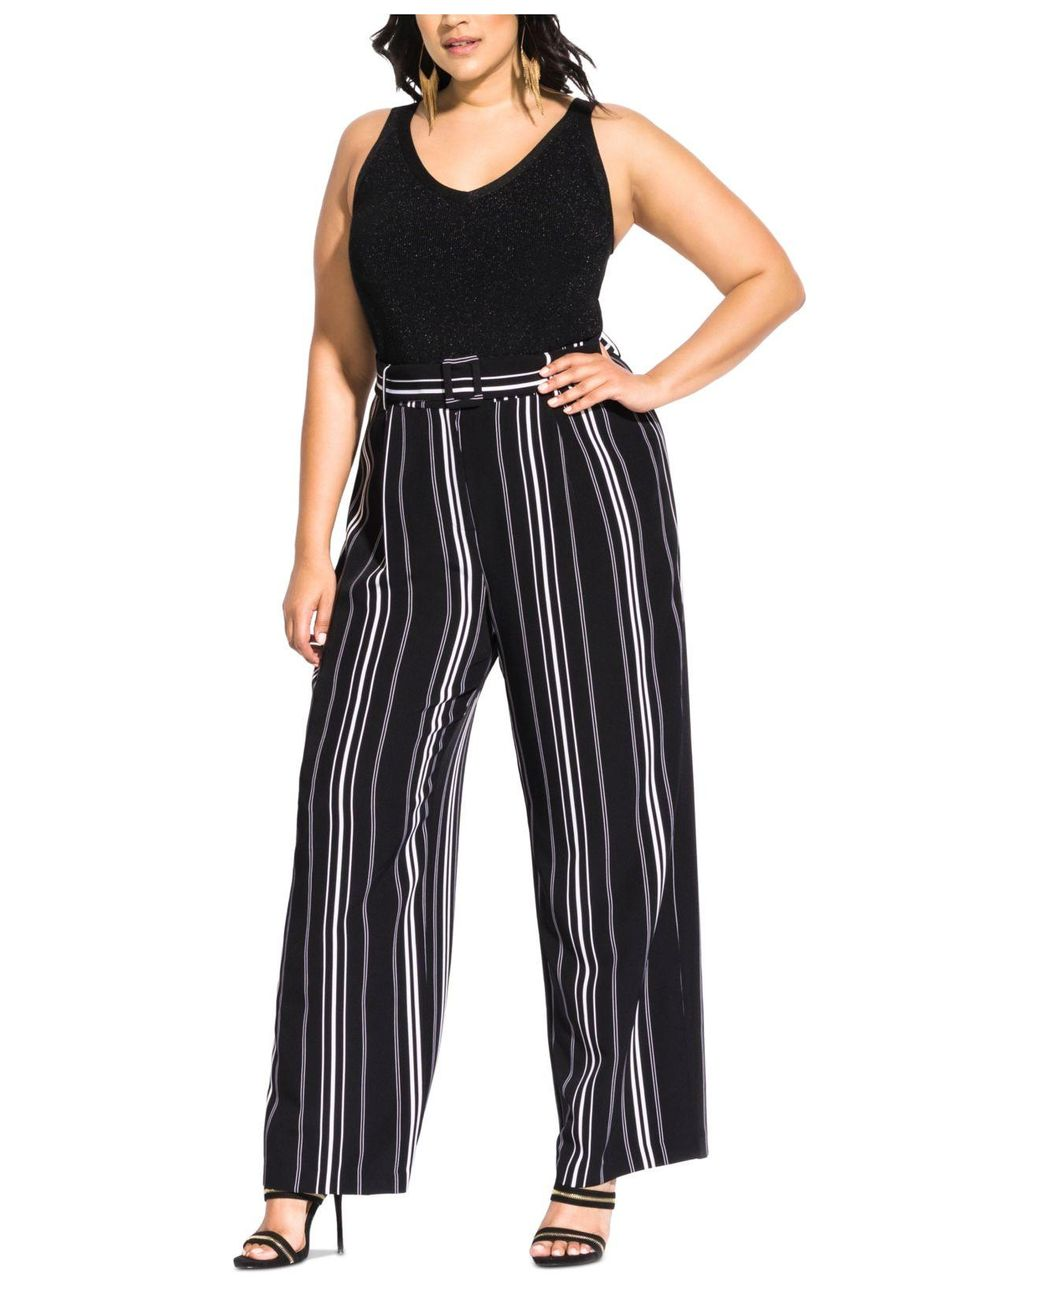 lowest price hottest sale pre order Women's Black Trendy Plus Size Belted Palazzo Pants